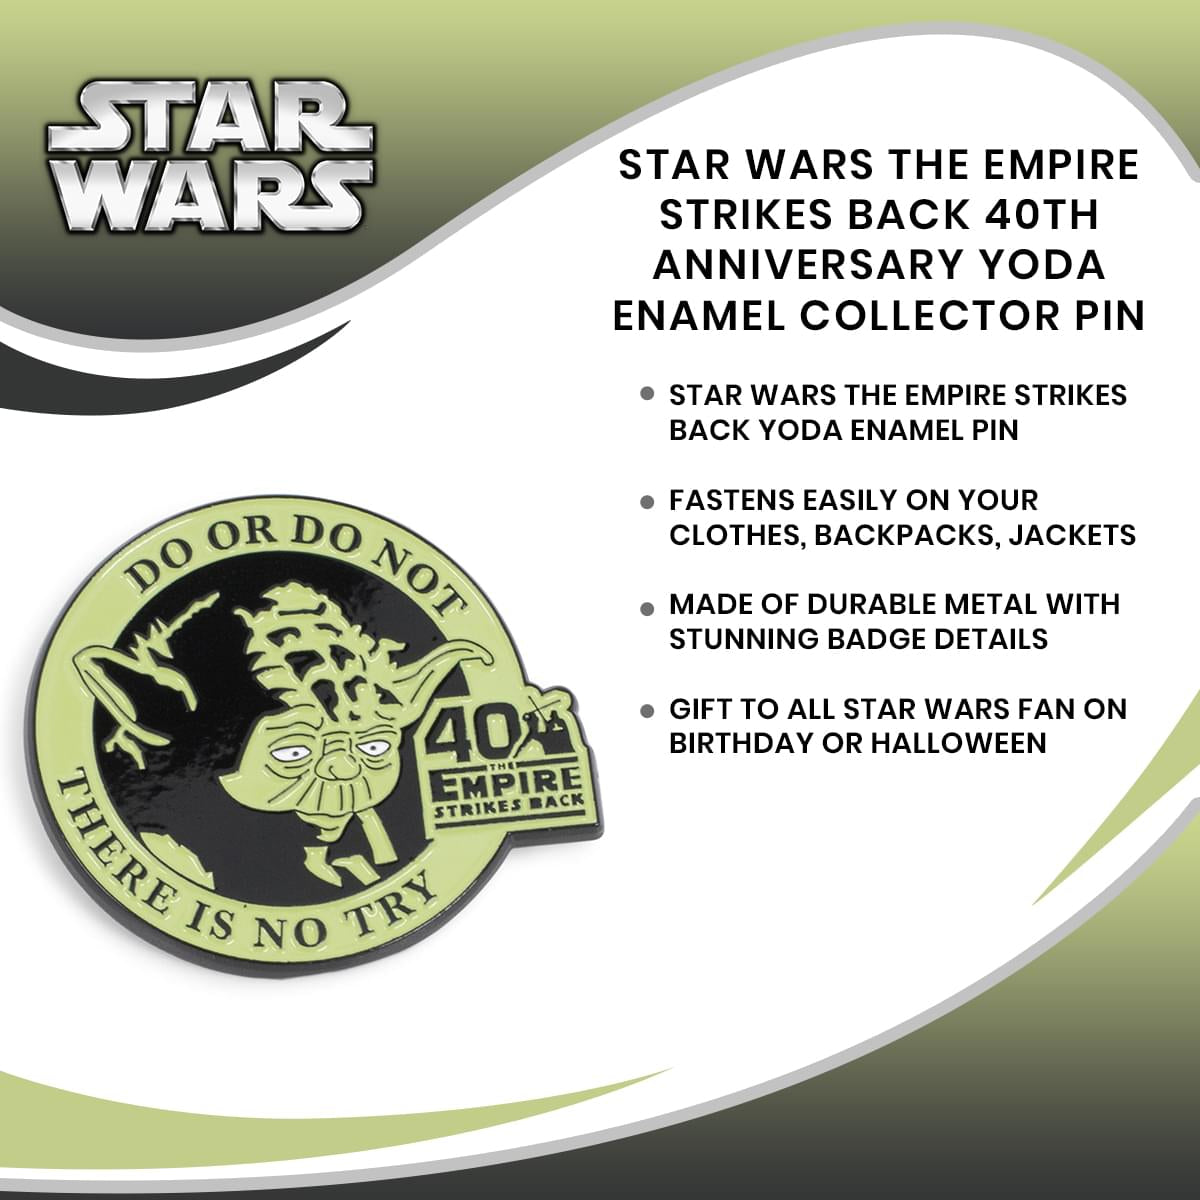 Star Wars The Empire Strikes Back 40th Anniversary Yoda Enamel Collector Pin